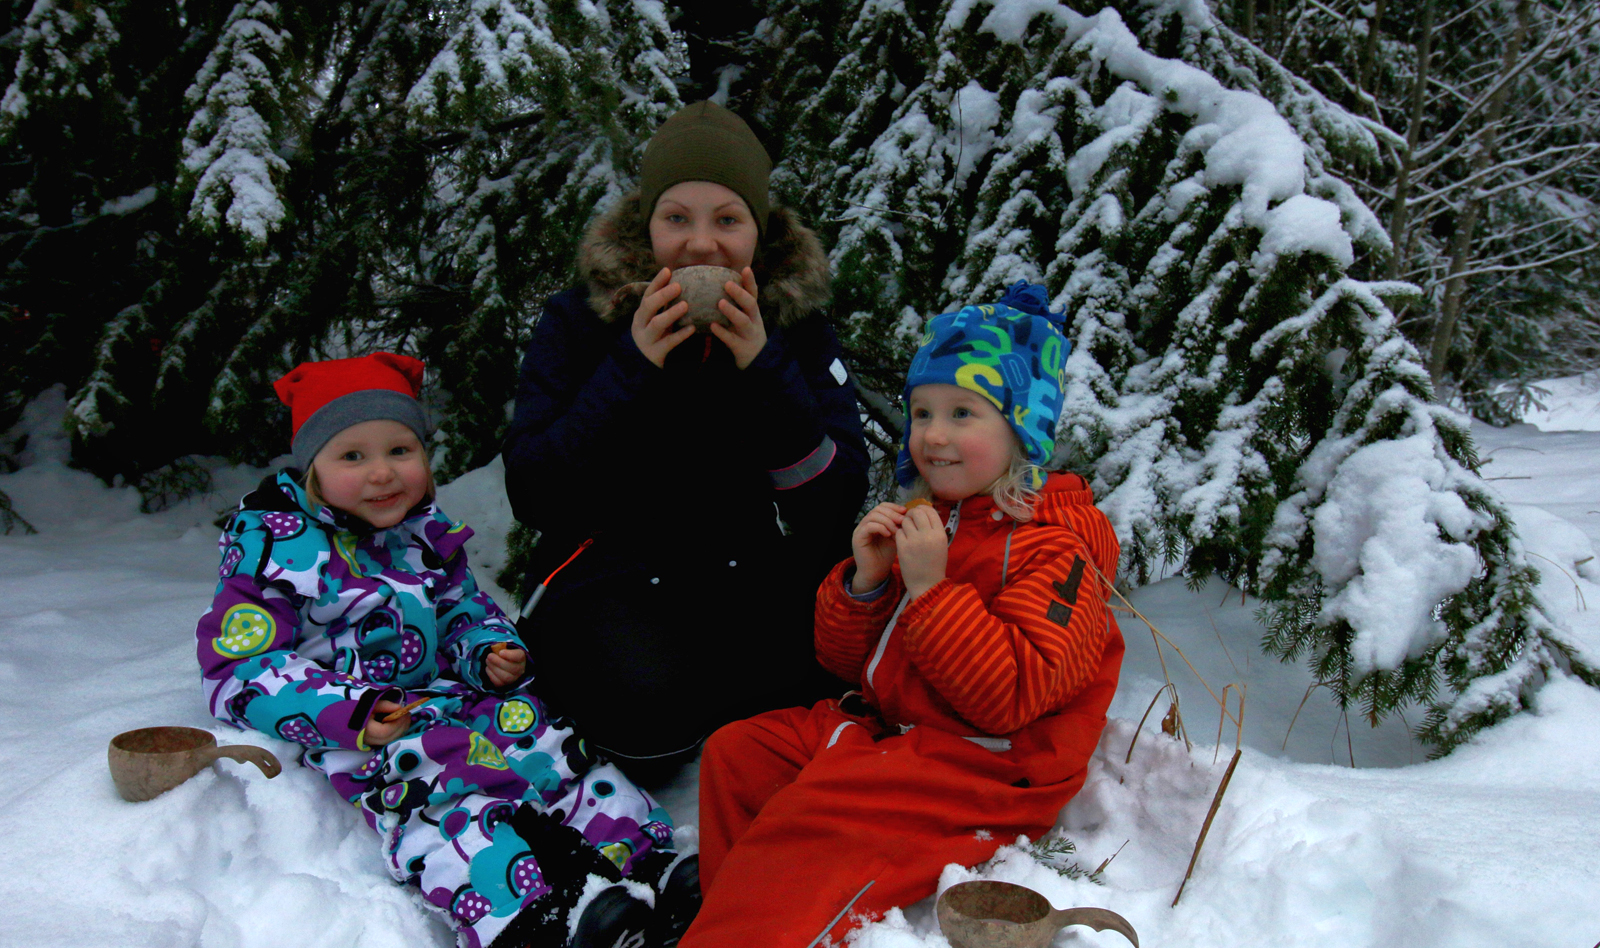 Finding a Christmas tree is important on a winter picnic, but gingerbread and hot chocolate may be even more essential, at least according to Taimi Hamunen, Rauni Korhonen and Lotta Palmio. Photo: Inkeri Palmio